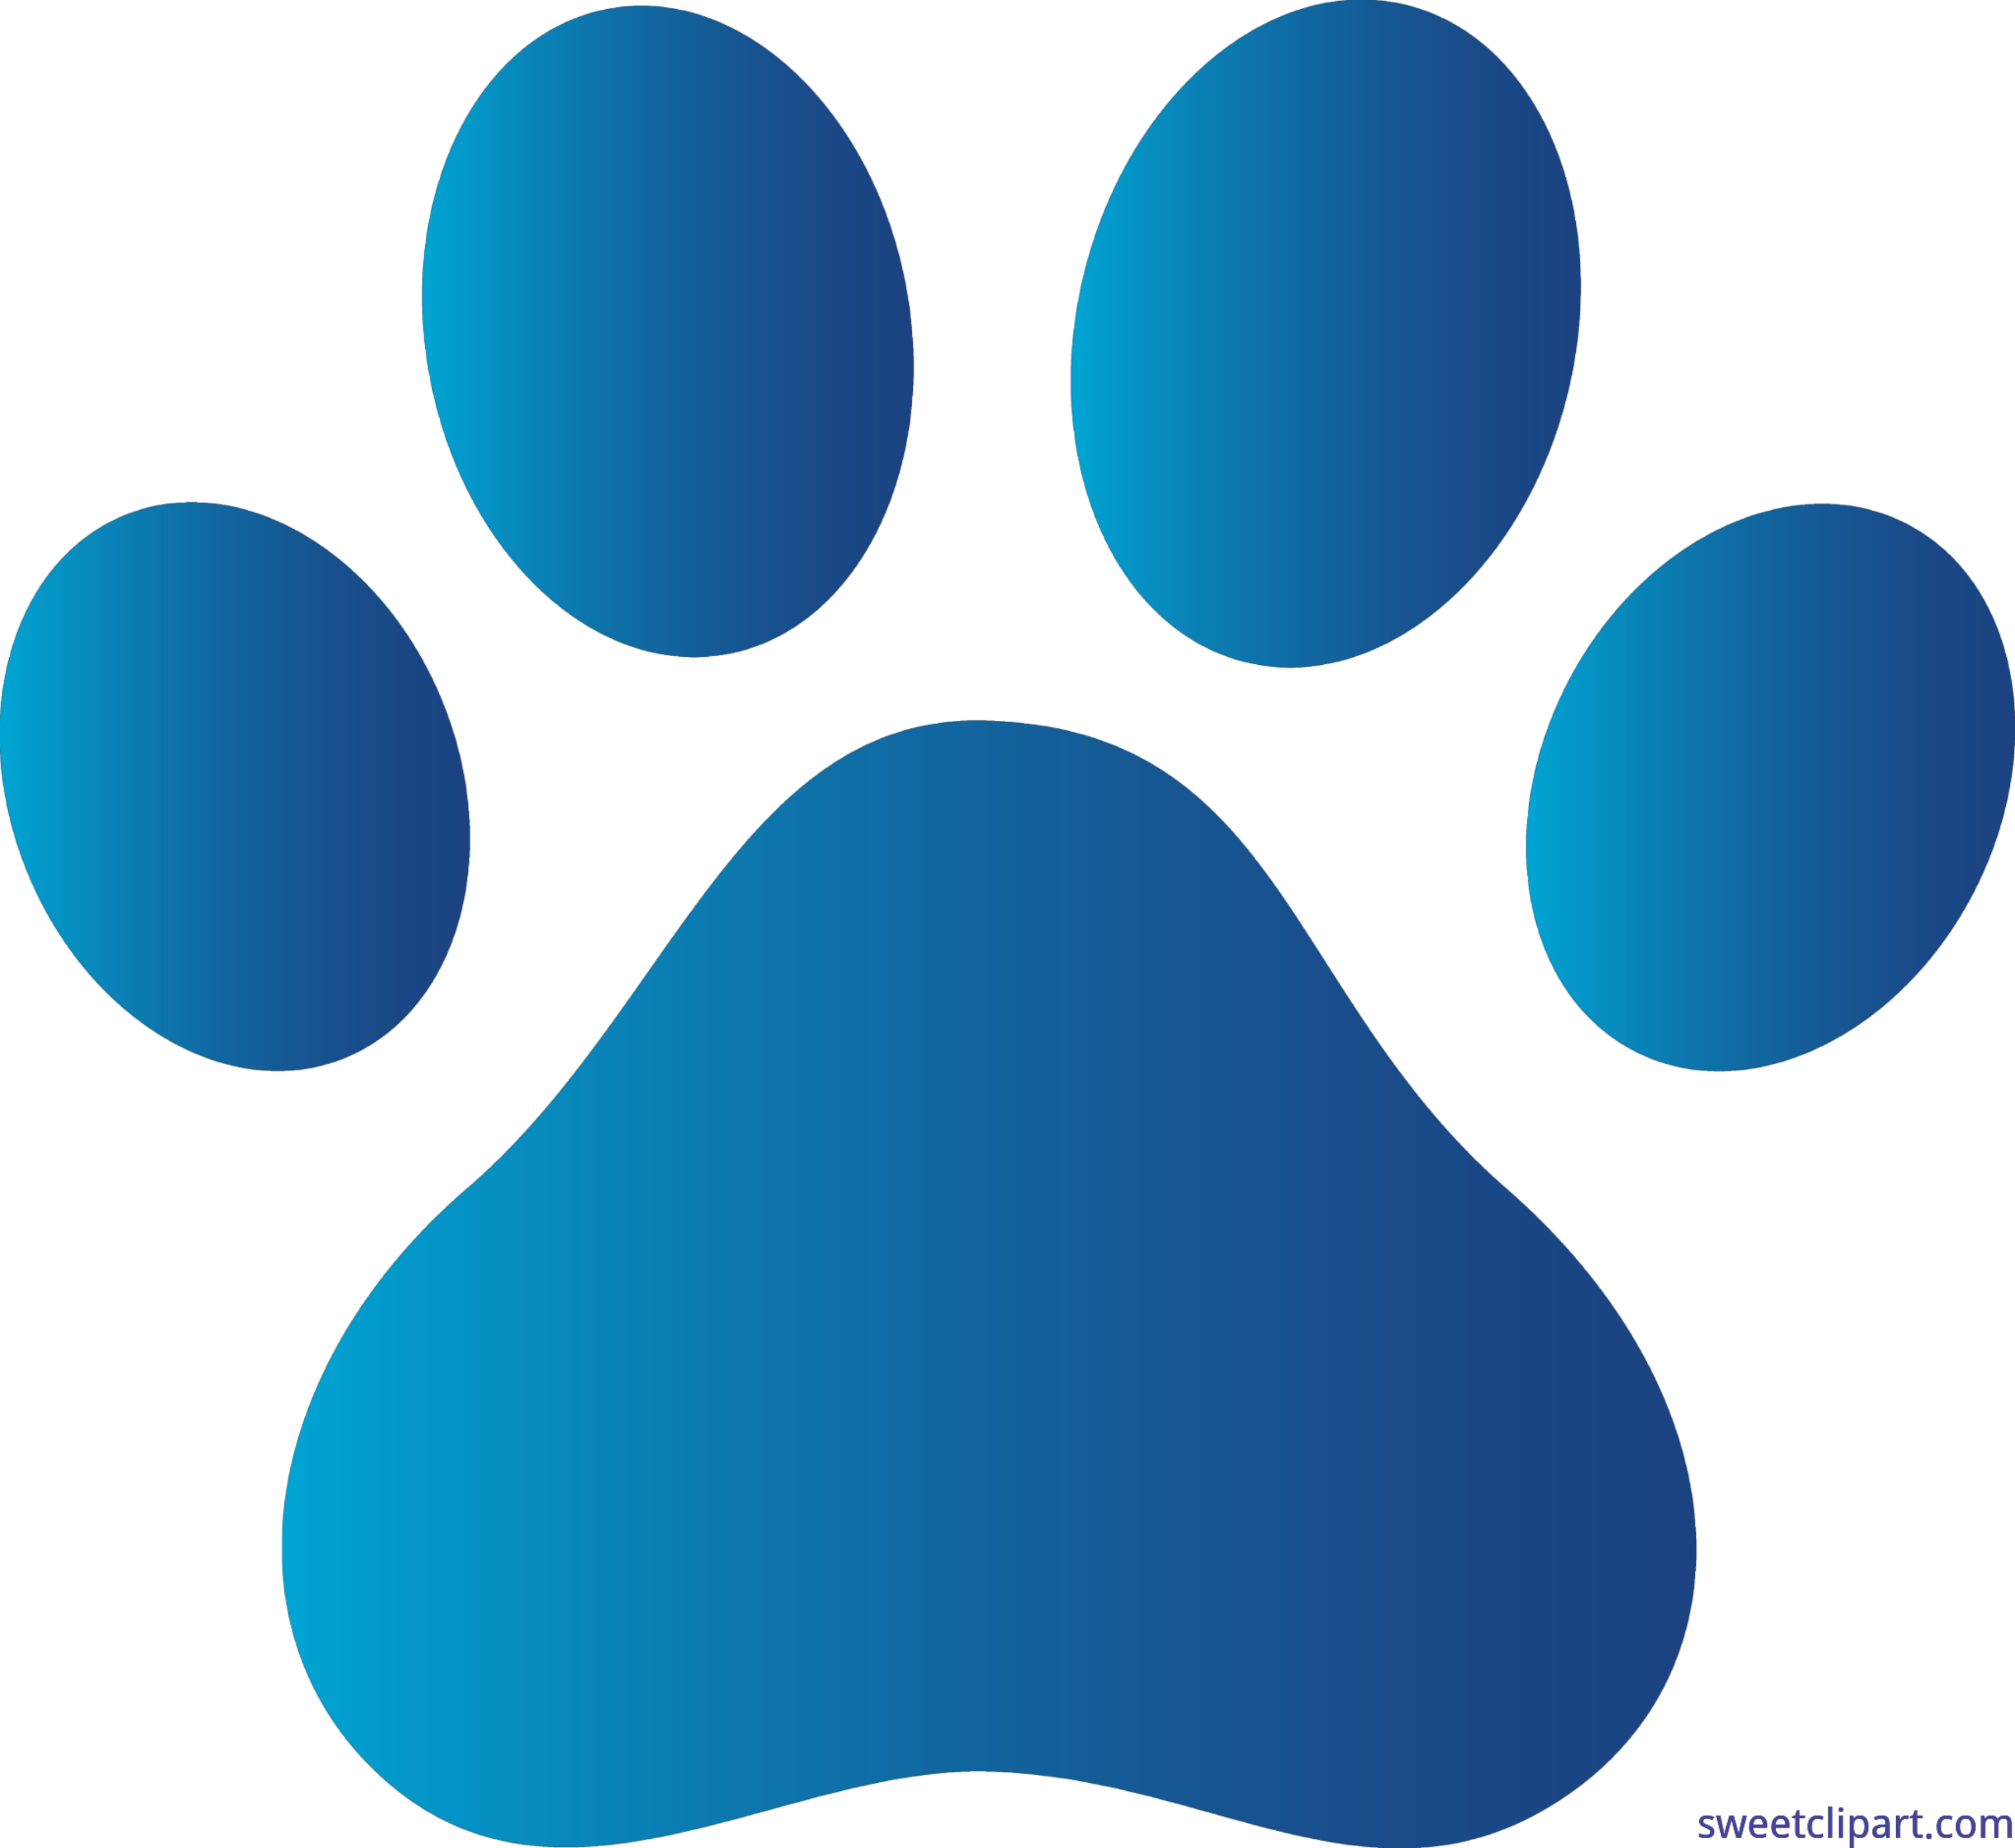 dog paw clipart at getdrawings com free for personal use dog paw rh getdrawings com